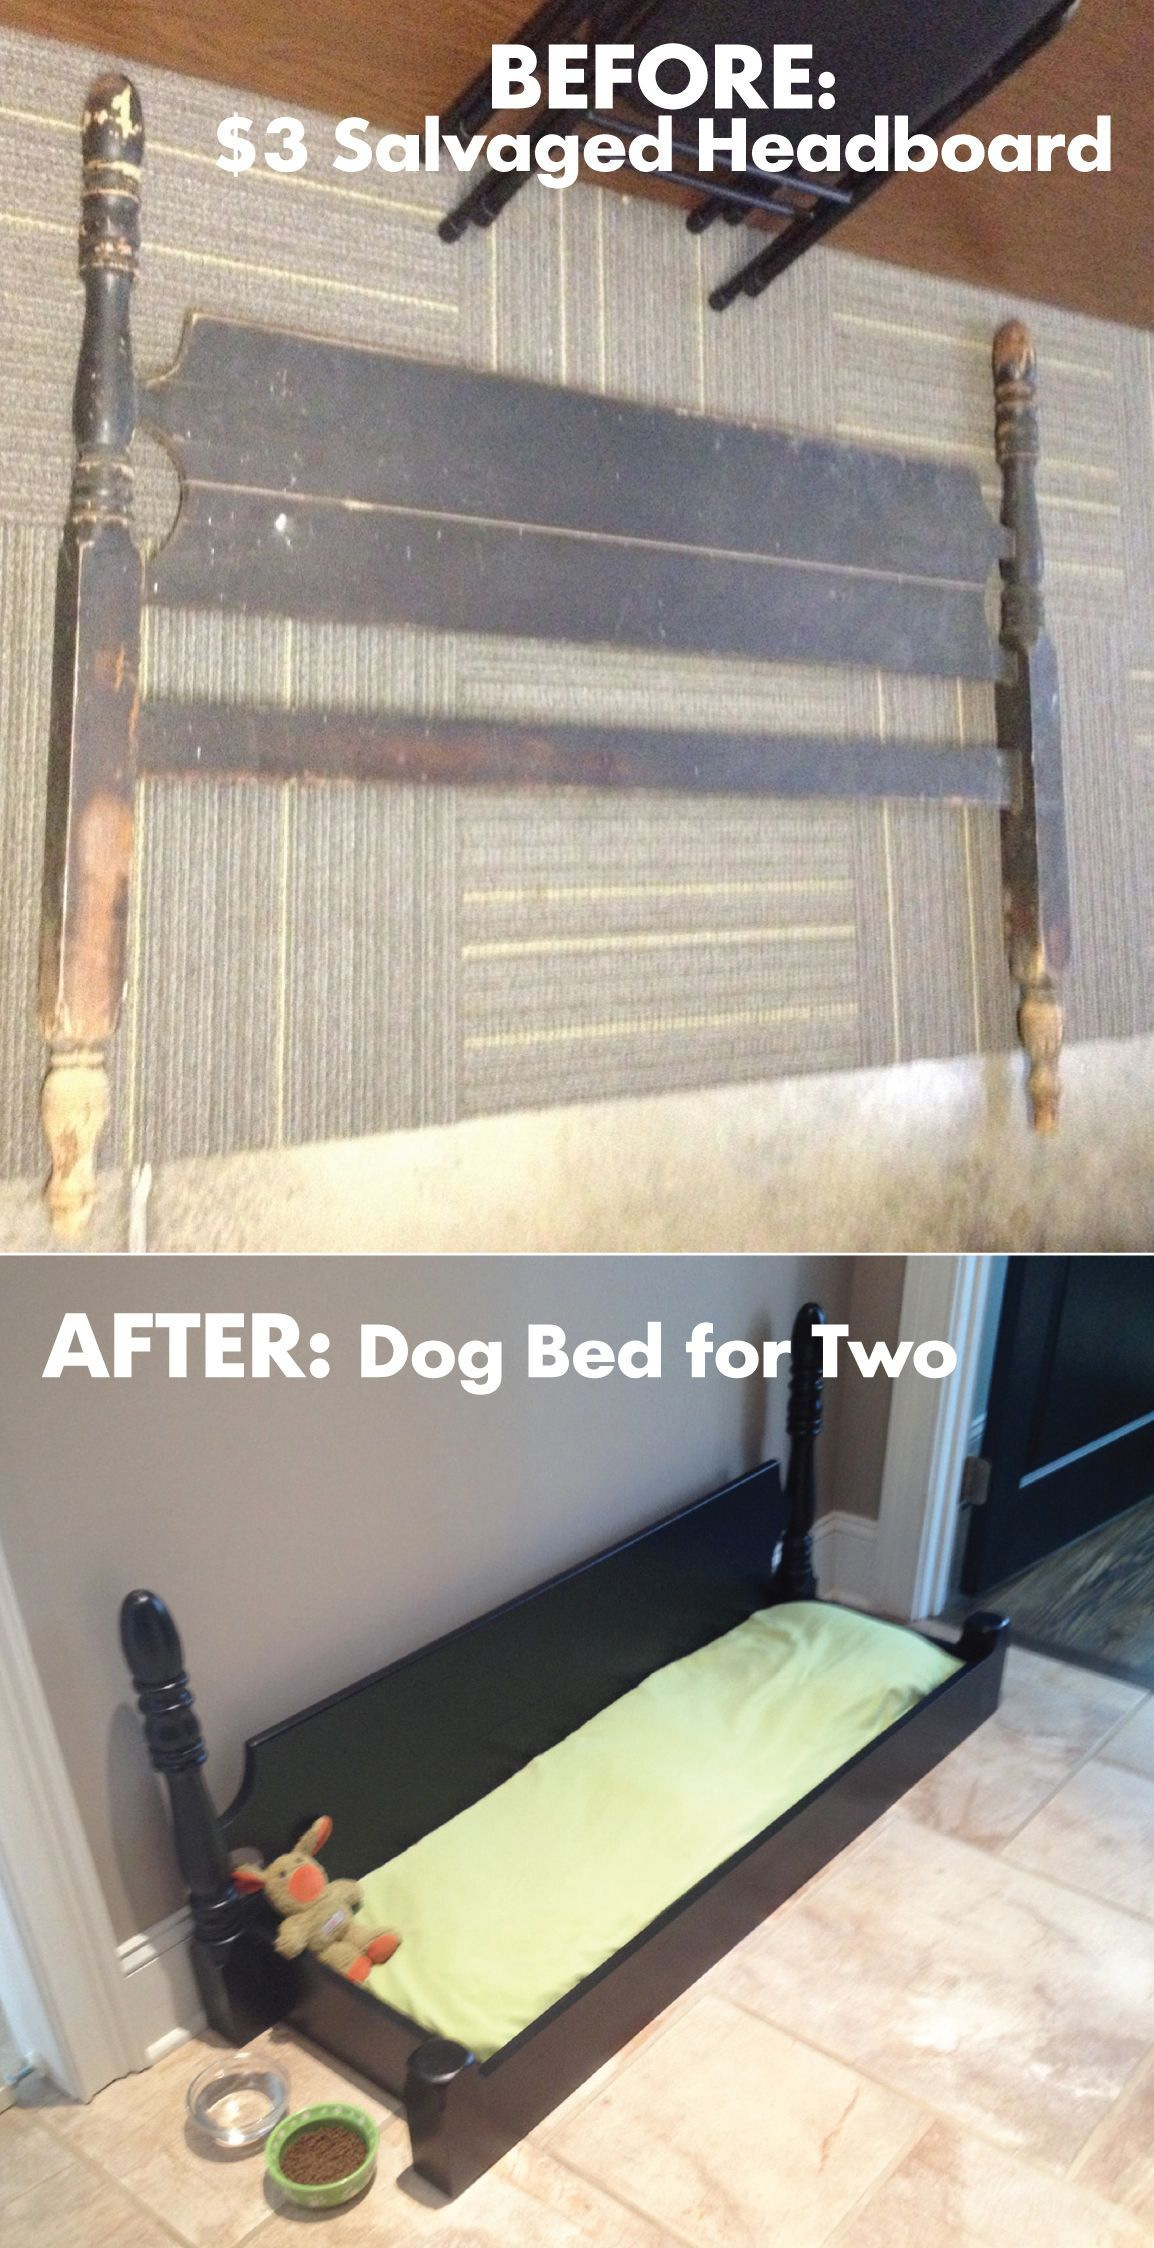 From Headboard to Dog Bed (With images) Diy dog stuff